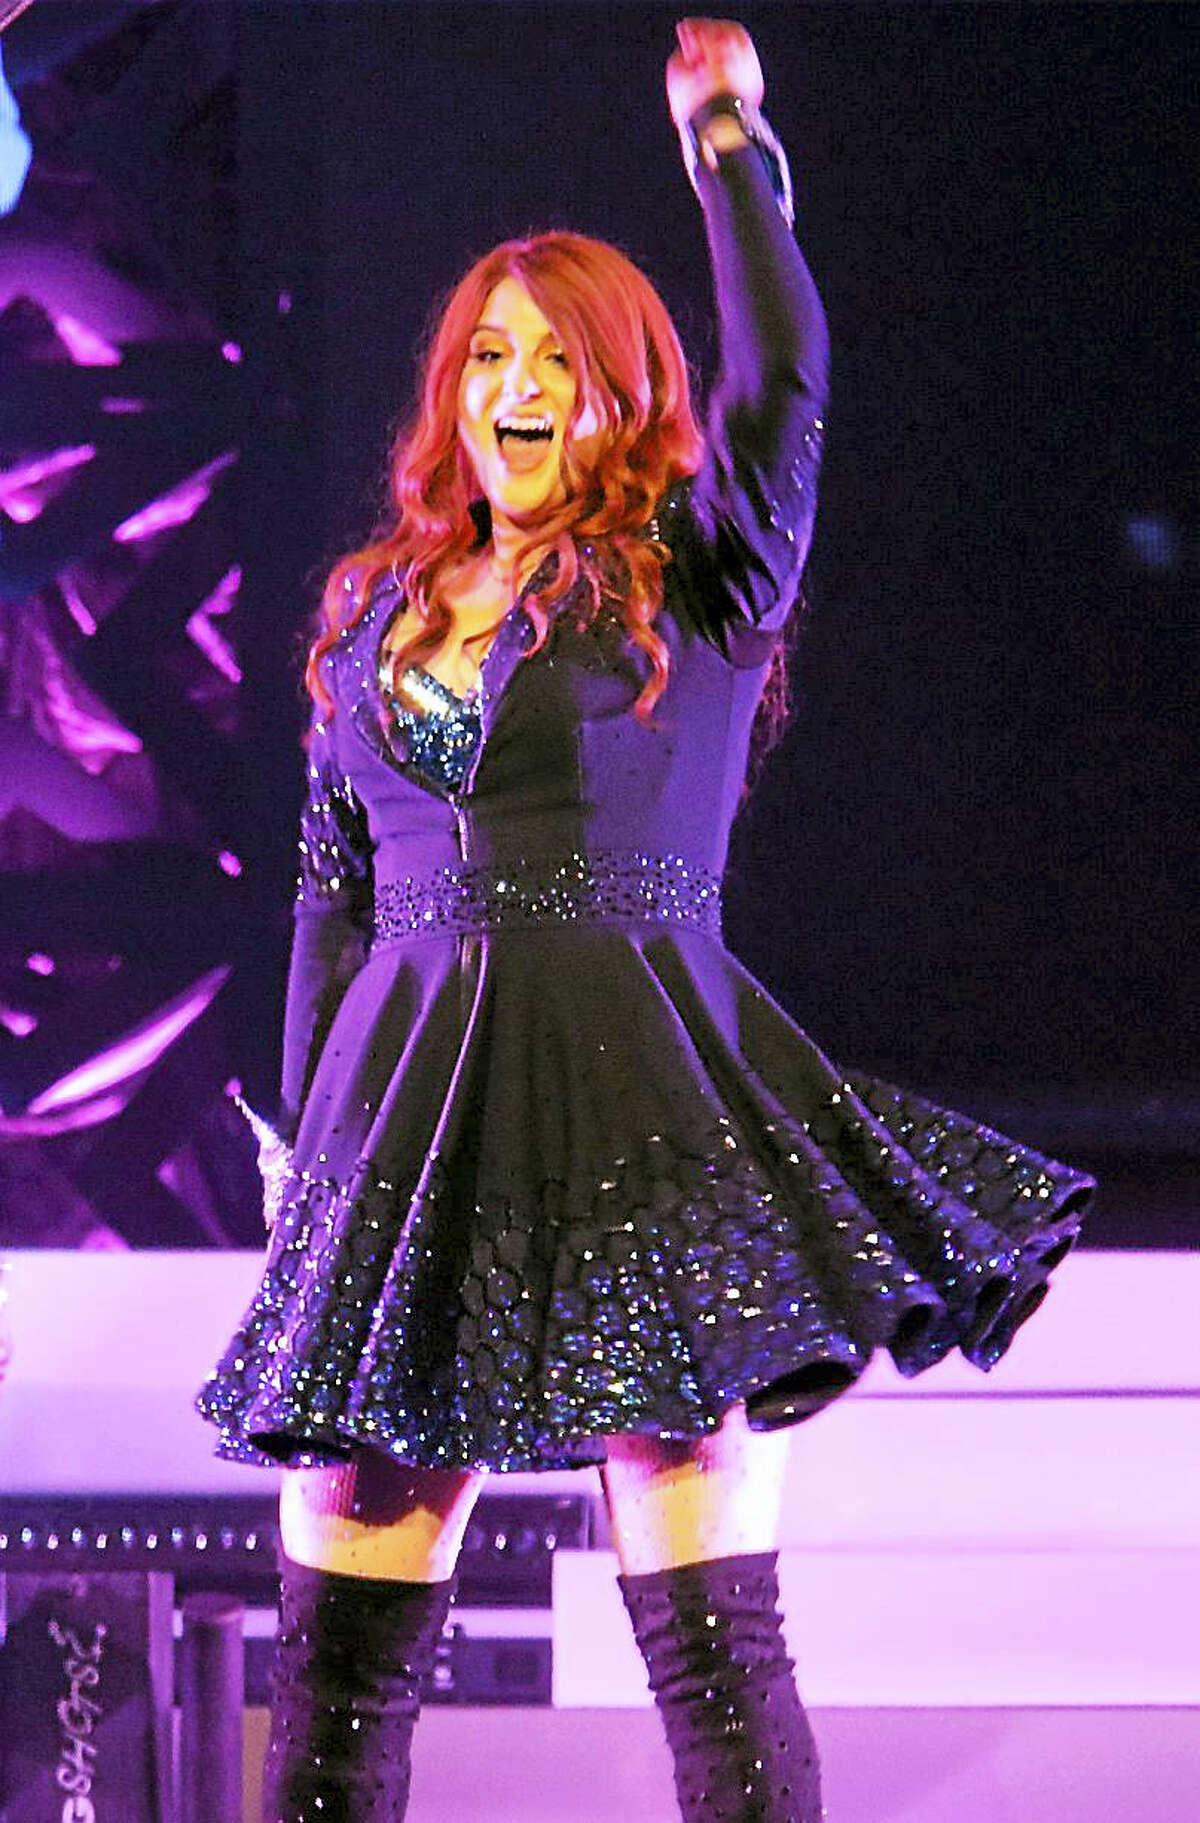 Photo by John AtashianSinger, songwriter and record producer Meghan Trainor dances and has fun on stage during her sold-out concert appearance at the Mohegan Sun Casino in Uncasville on Sept. 22. Meghan is currently on a US tour in support of her new CD, Thank You.